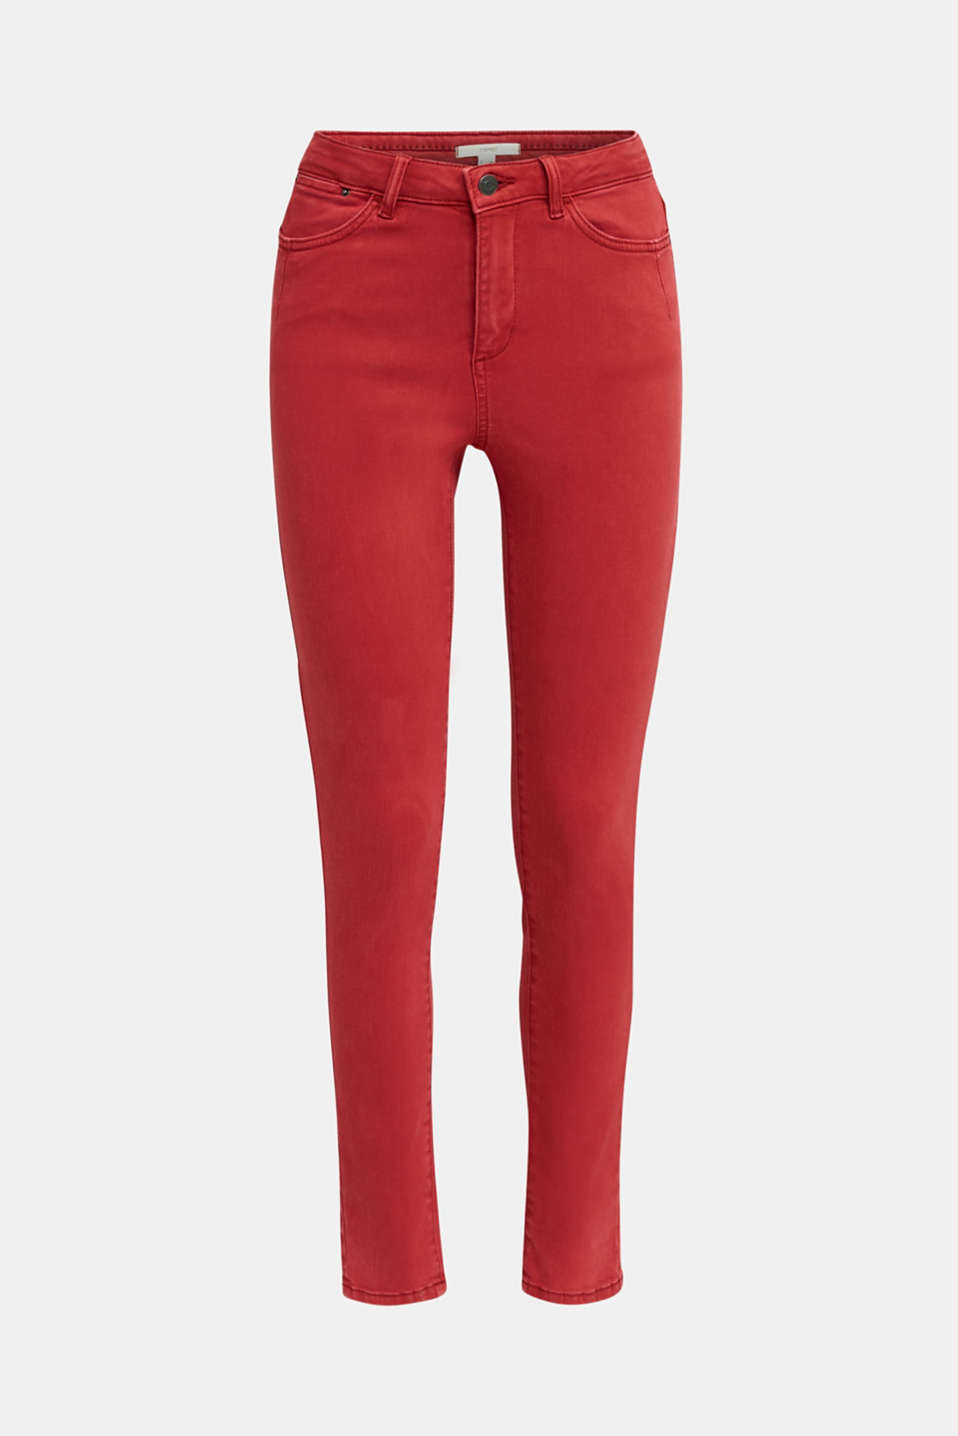 Jeans with a figure-contouring effect, DARK RED, detail image number 5